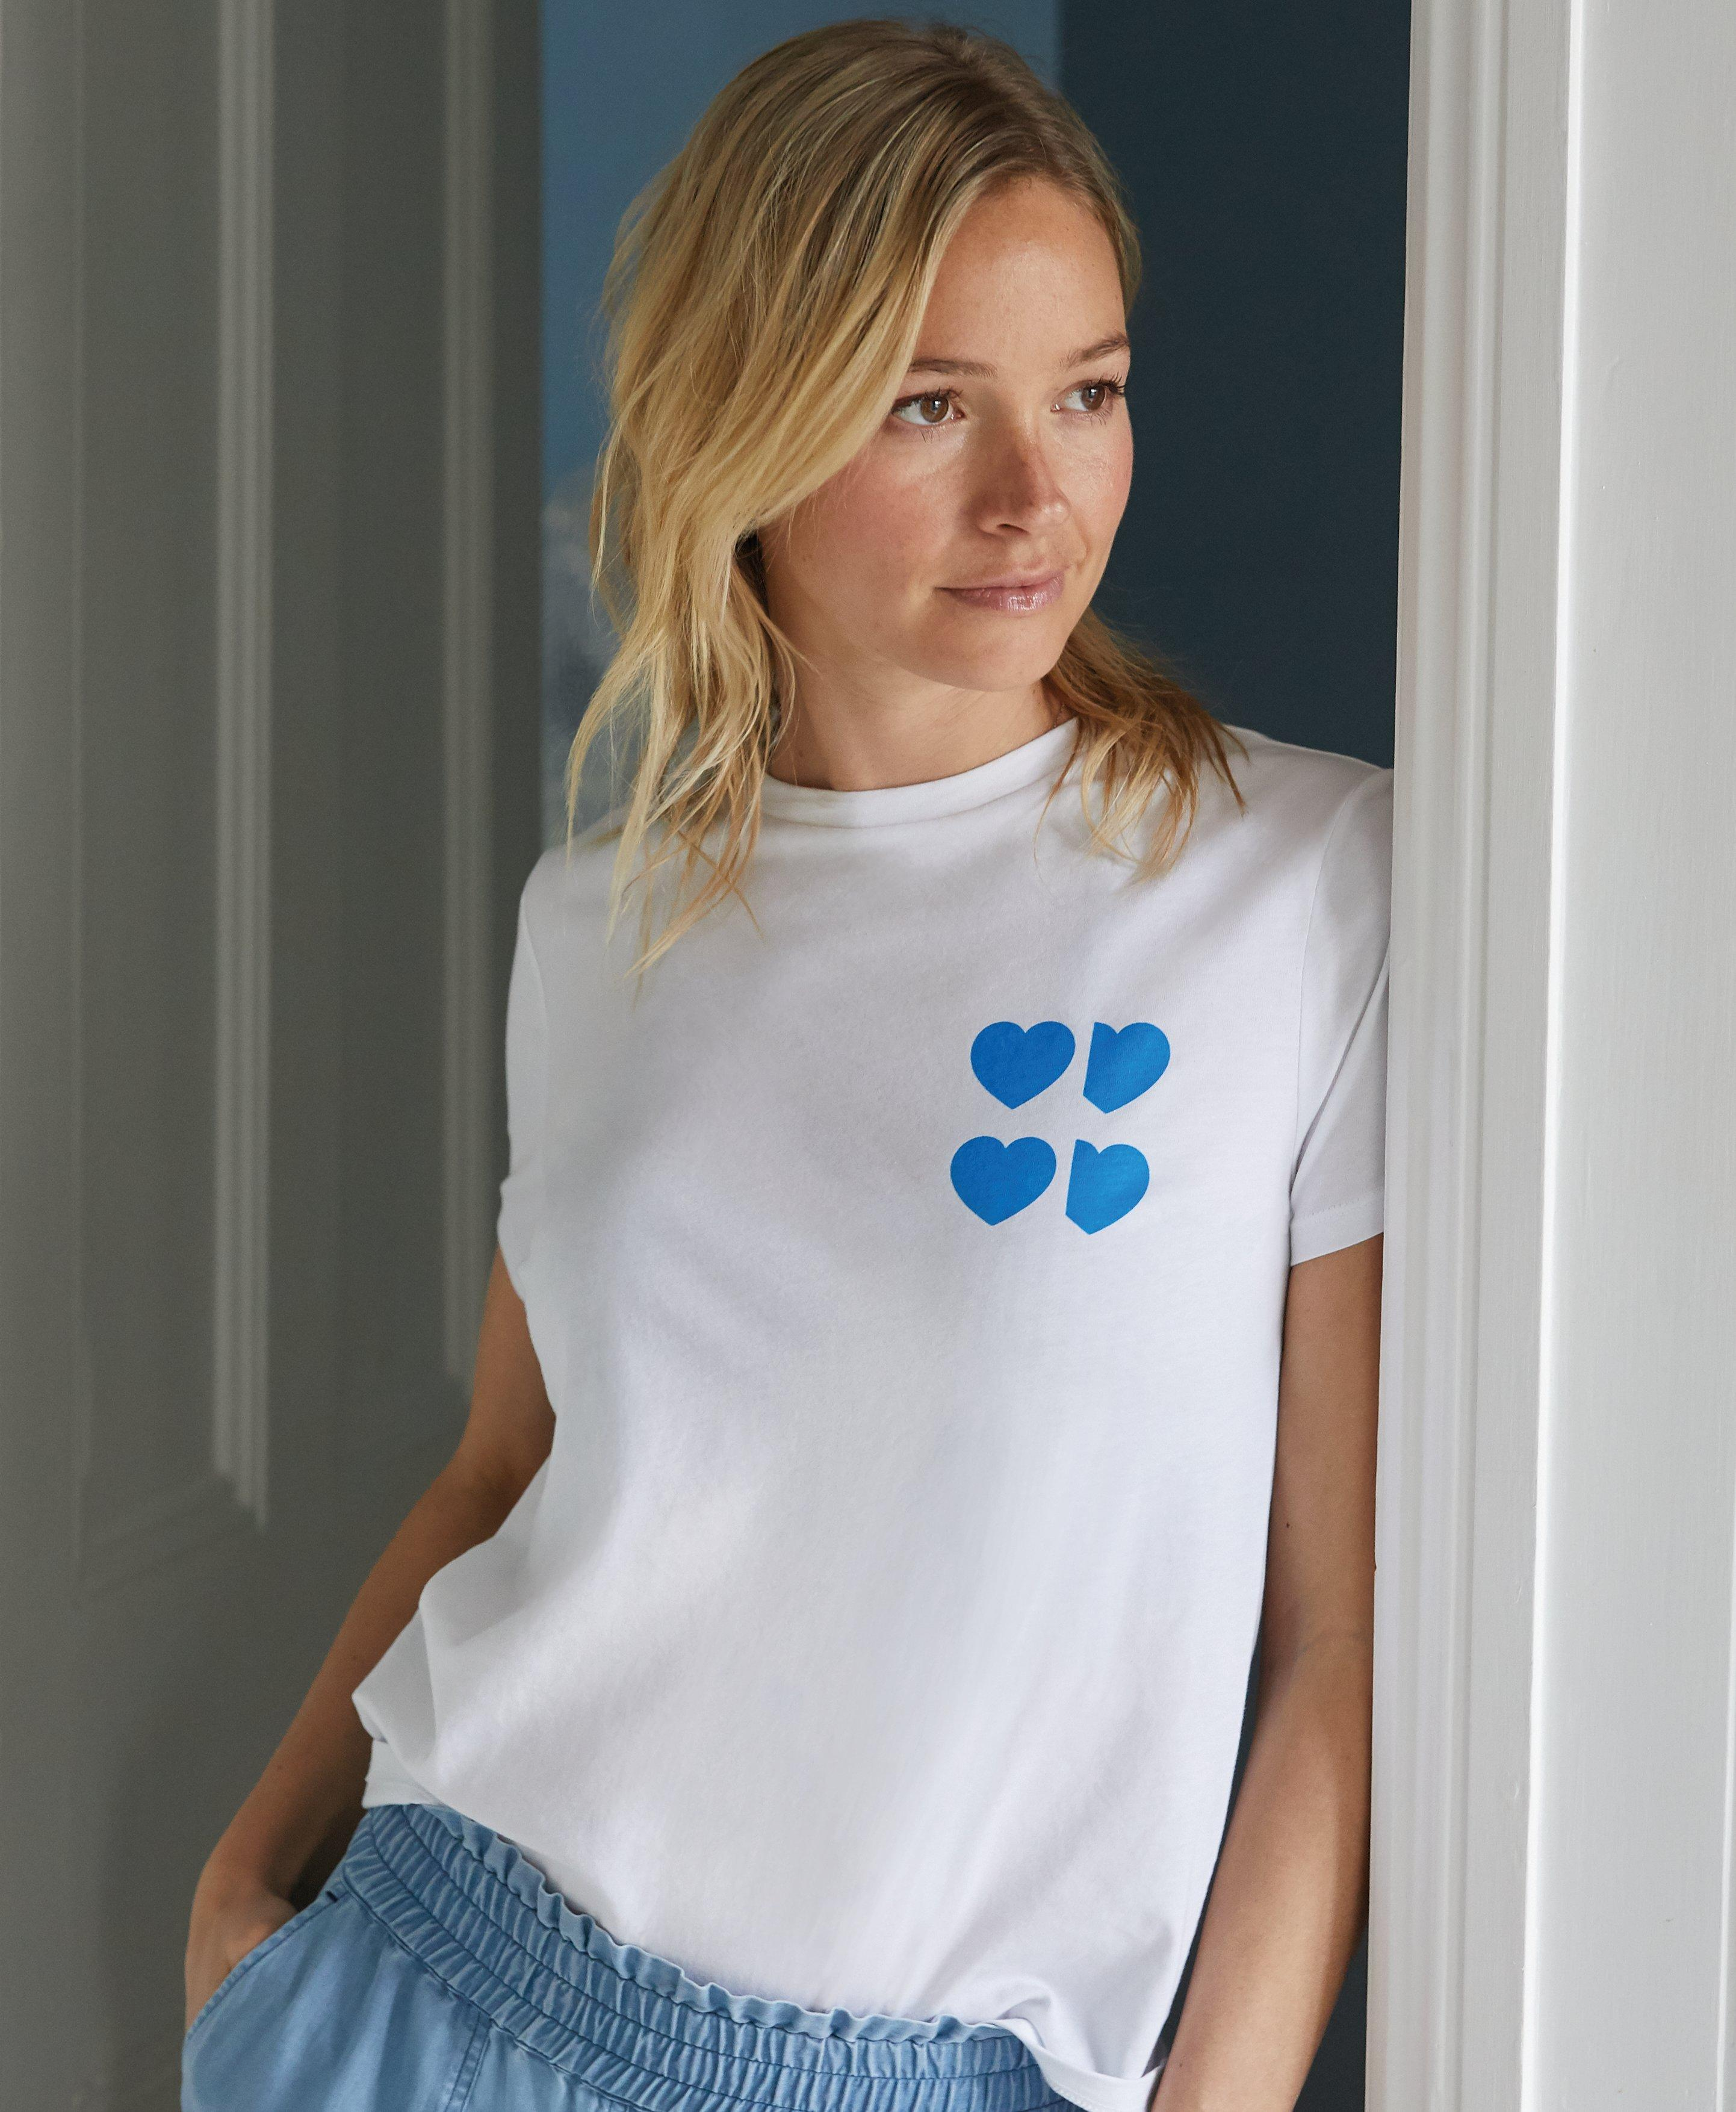 Update your basics this season with this super soft T-shirt with a blue heart design designed to our healthcare heroes. All proceeds from each sale of this t-shirt will go to NHS Charities Together, the NHS Charity collective supporting NHS Staff and volunteers.